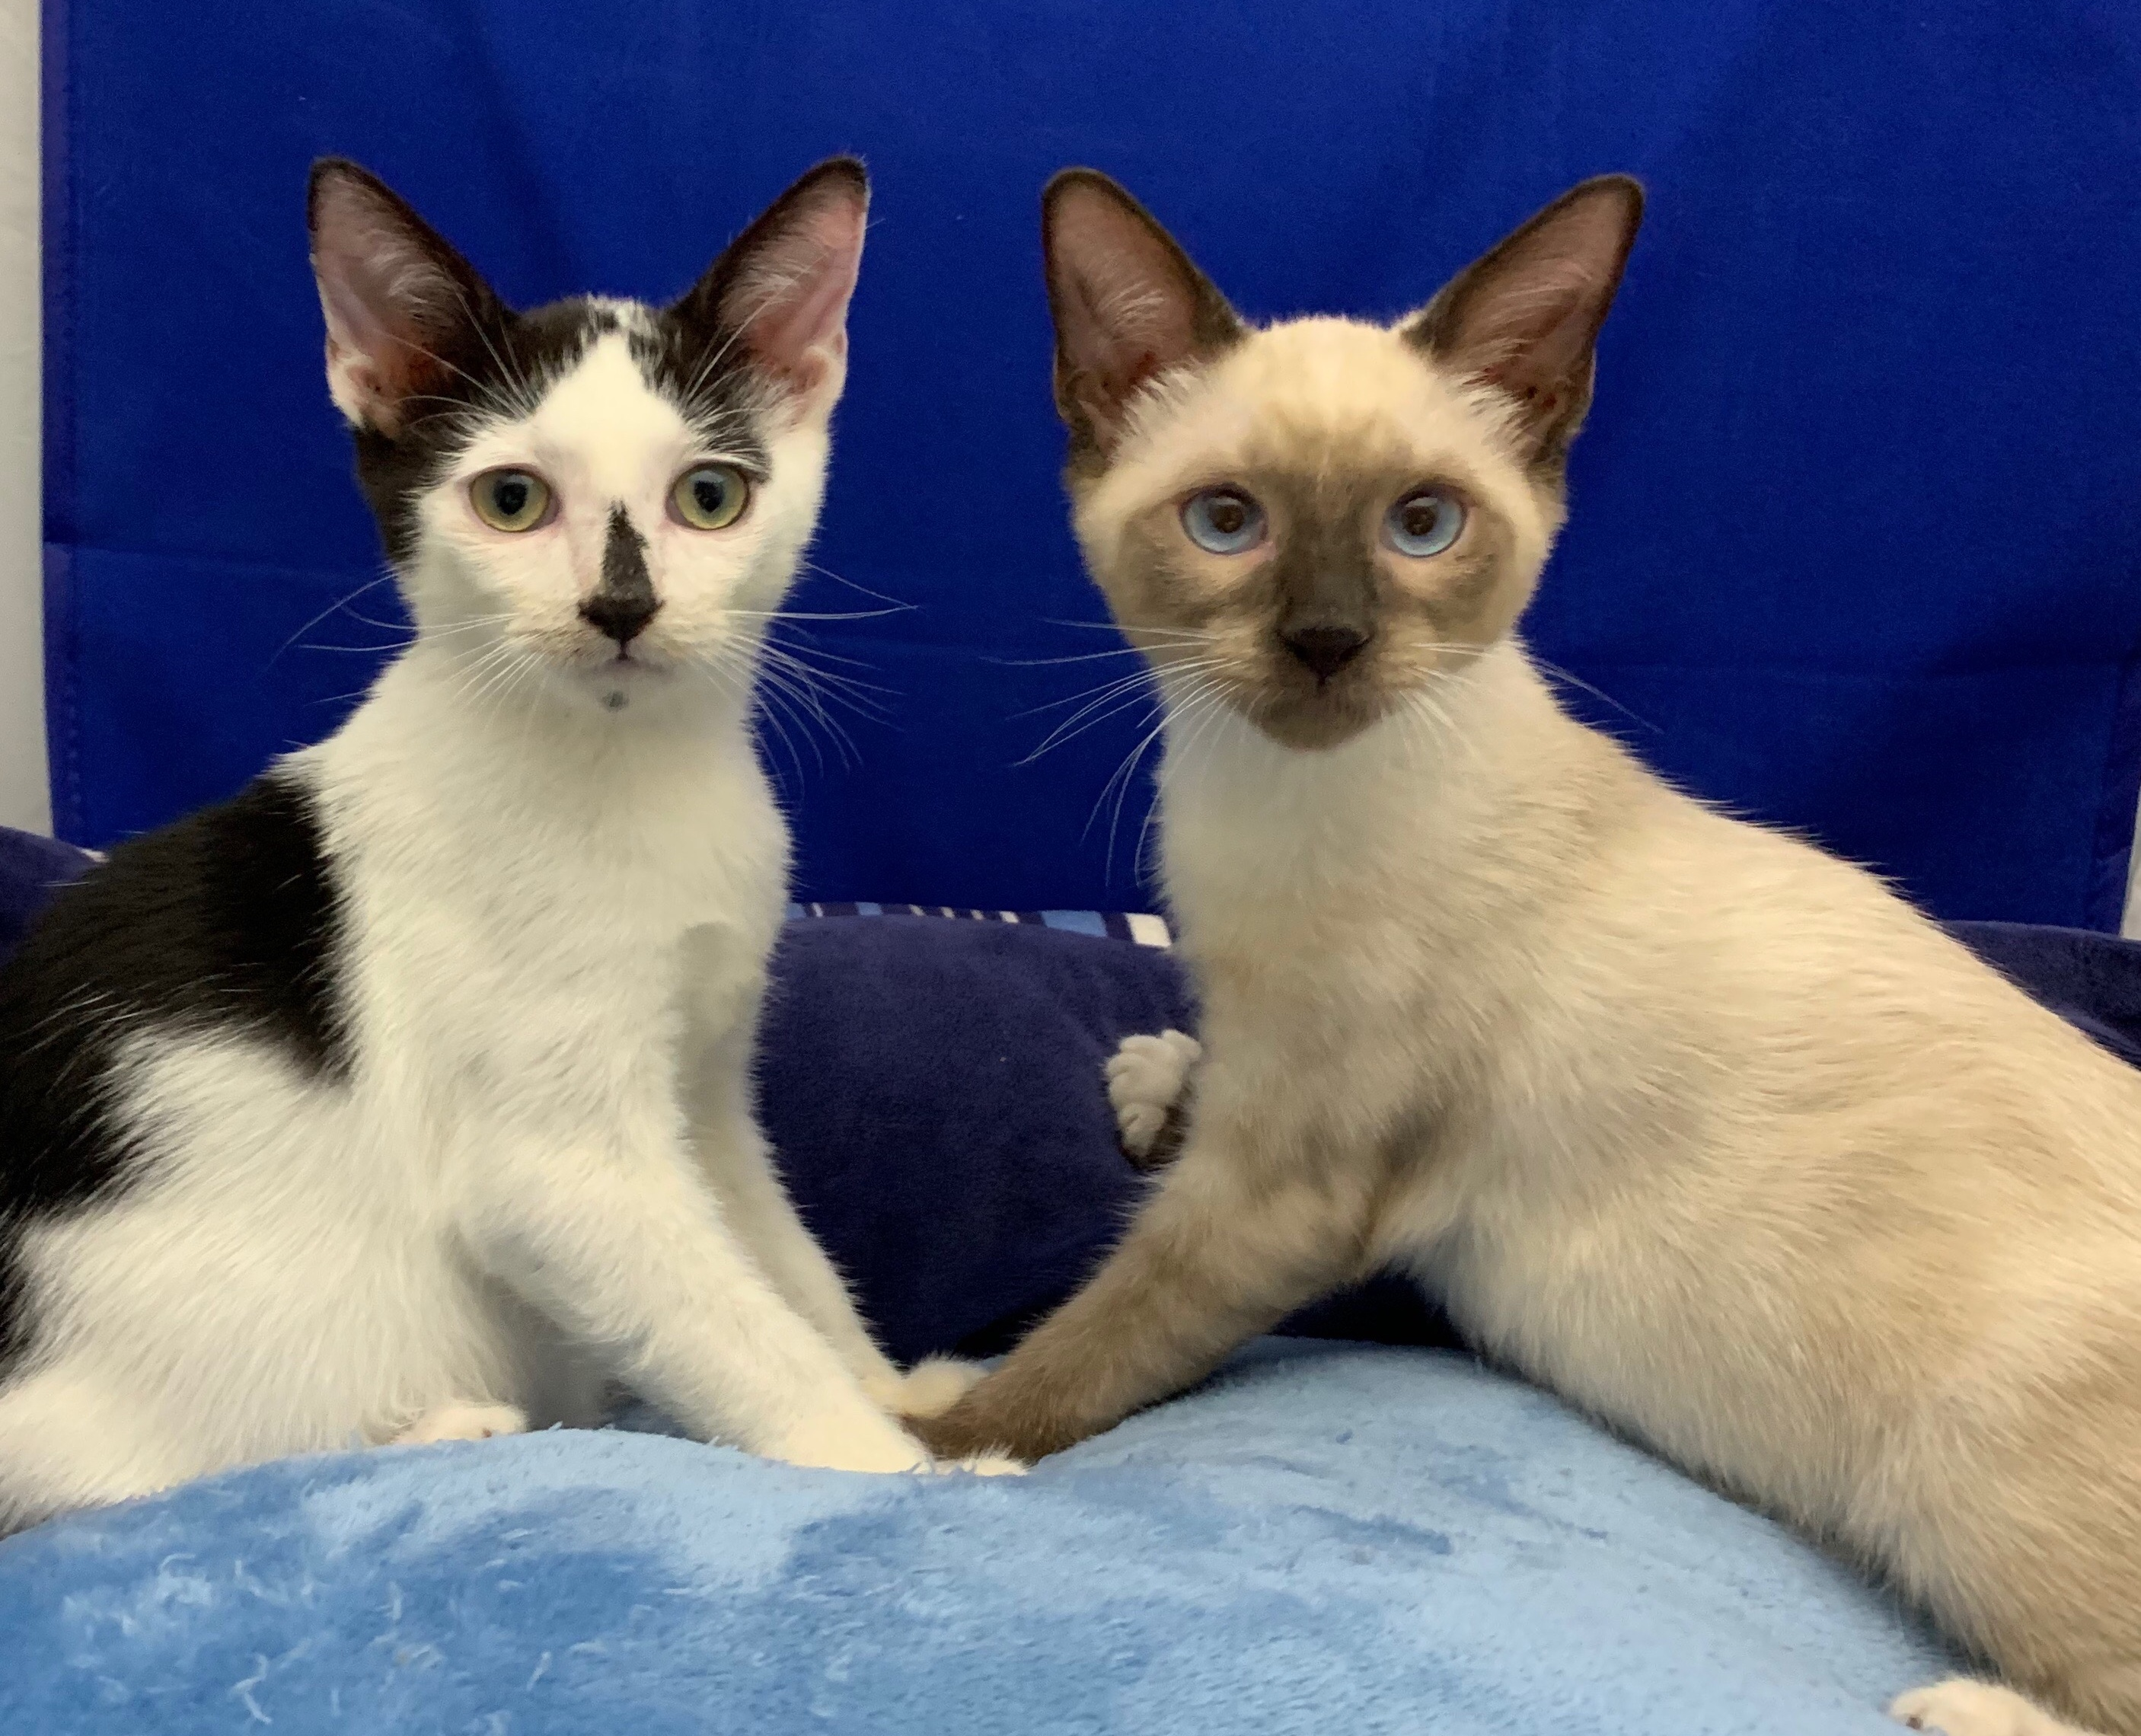 Adopt Charmin The Chocolate Point Siamese From Cats Can Inc In Oviedo Fl